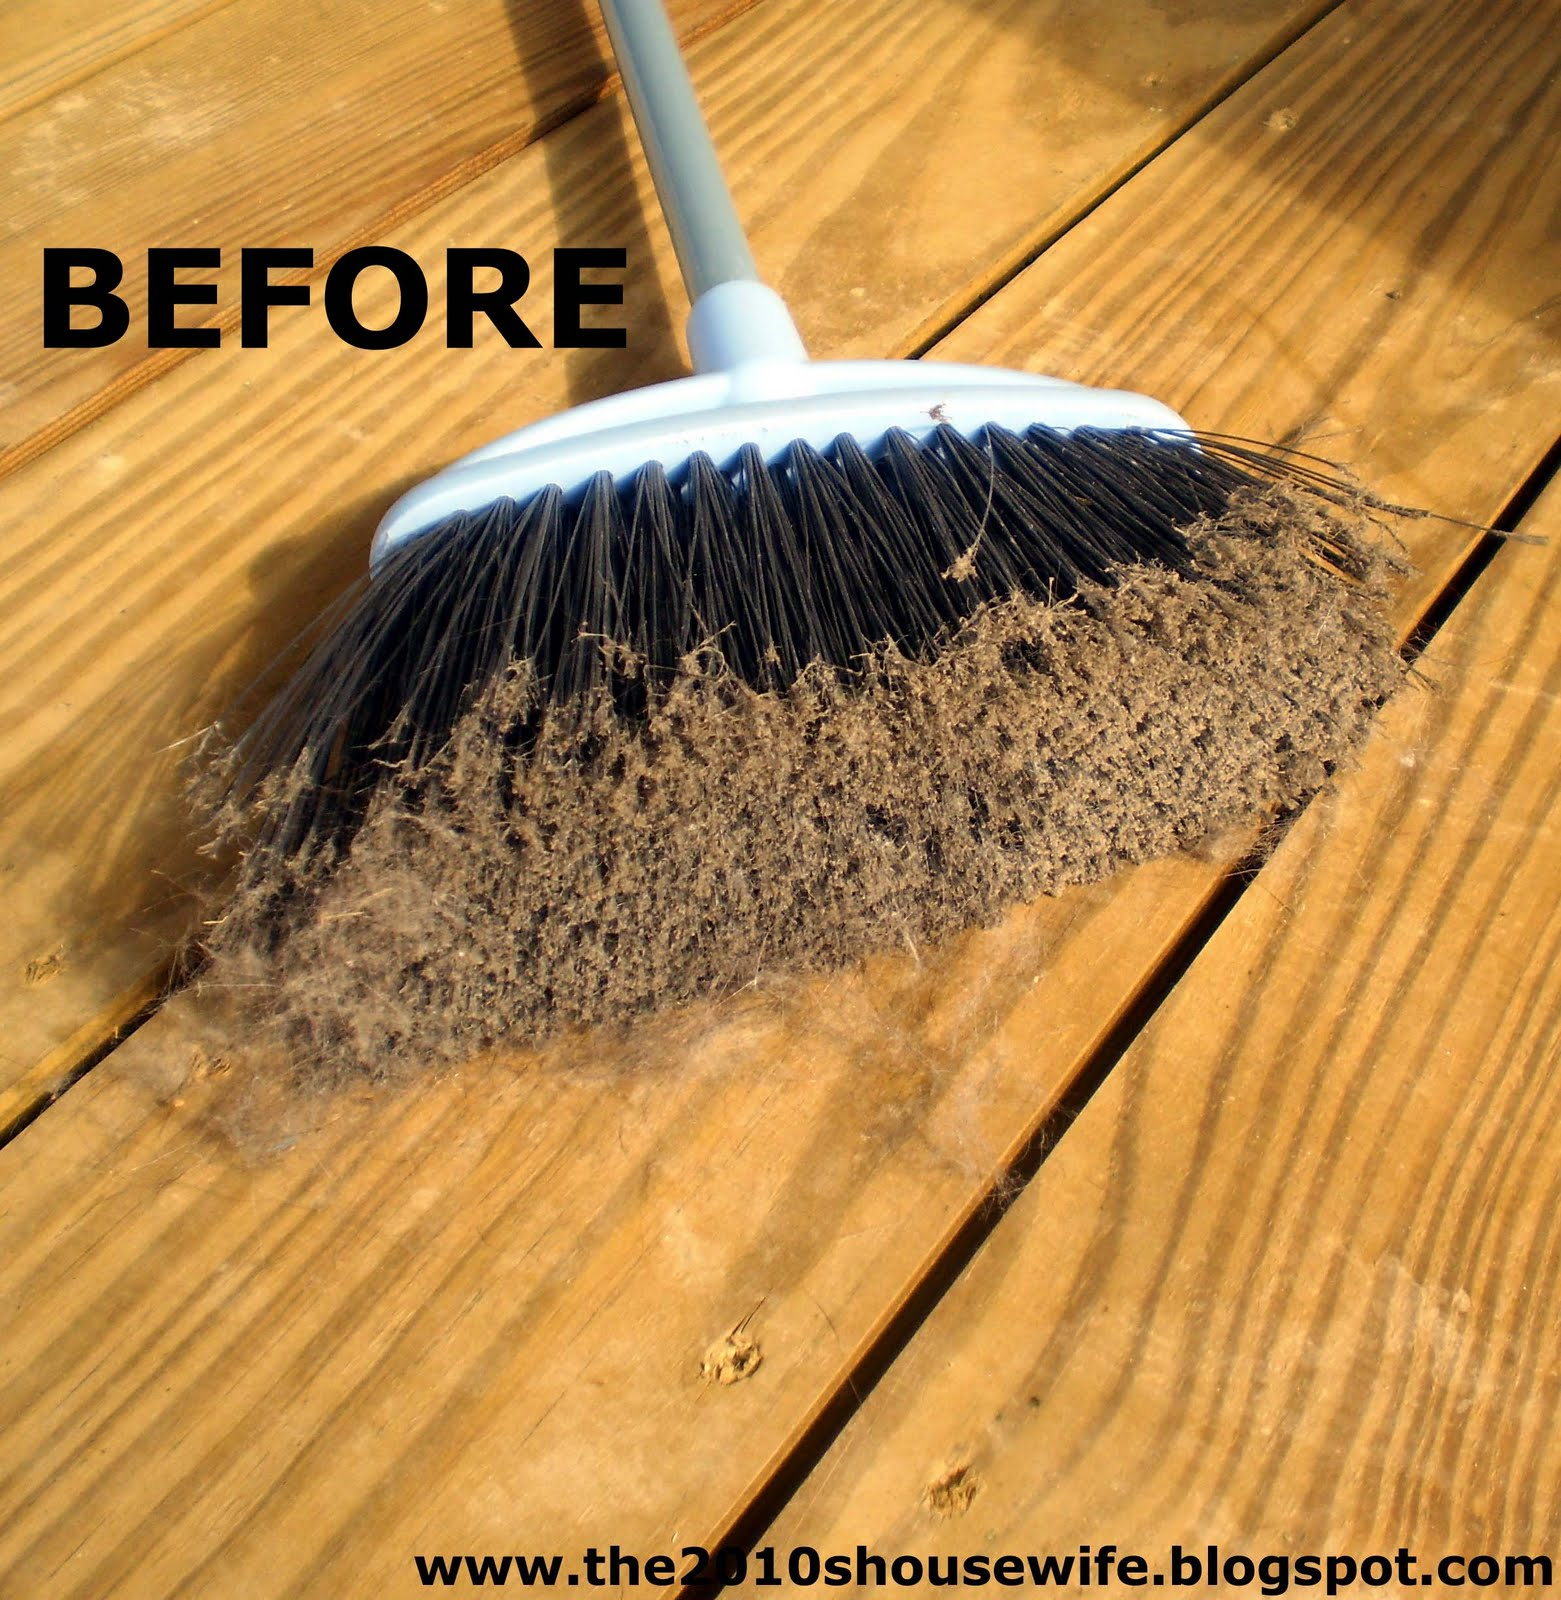 the 2010 s housewife how to clean a broom. Black Bedroom Furniture Sets. Home Design Ideas